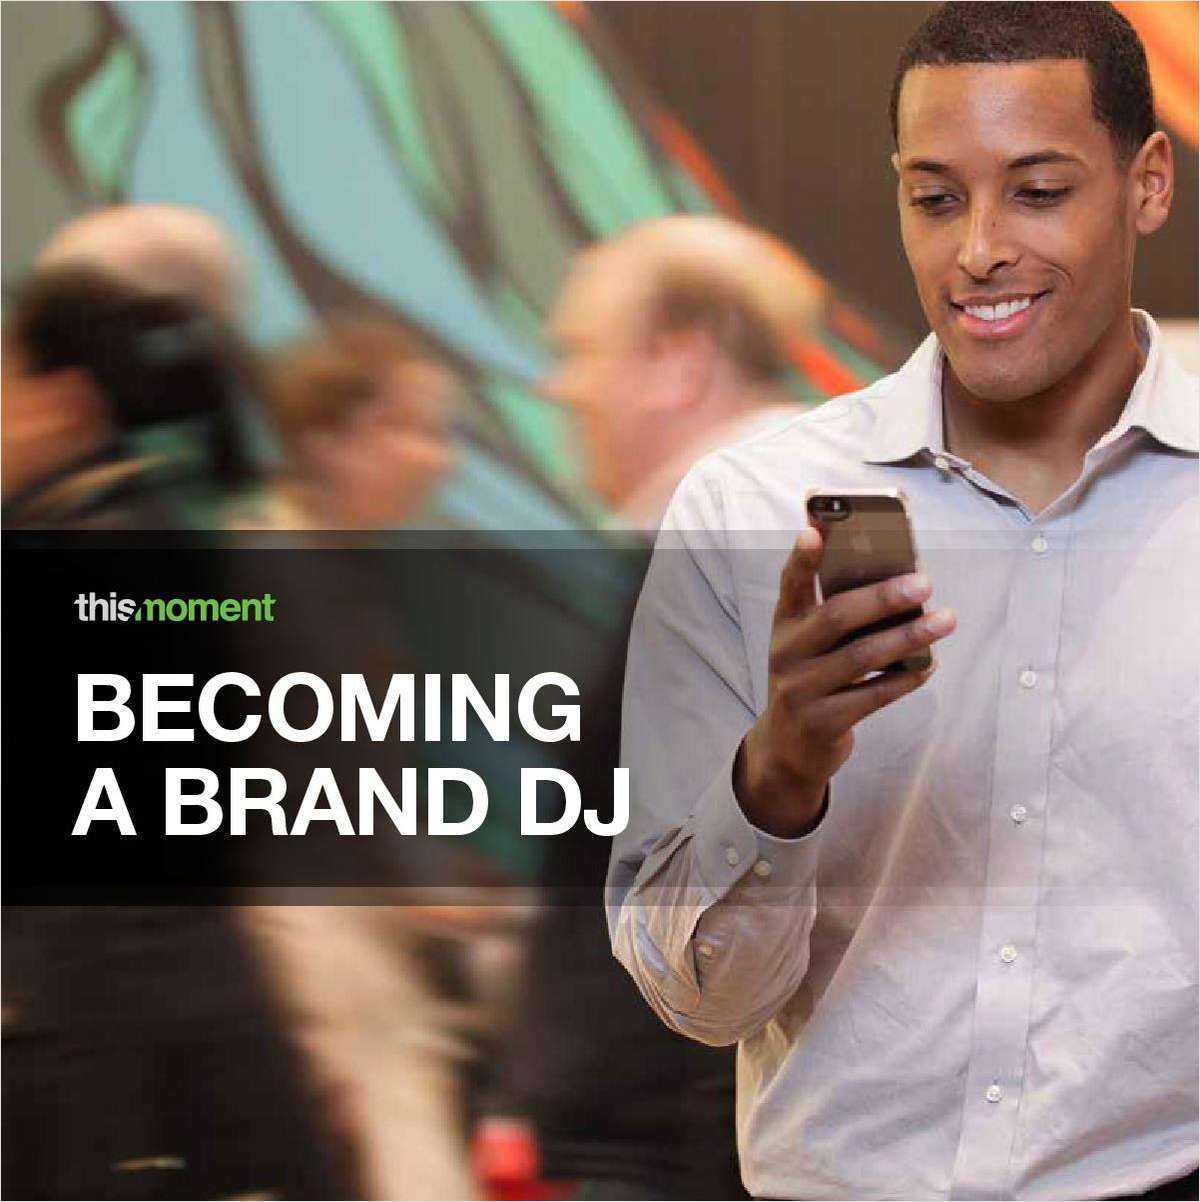 Becoming a Brand DJ